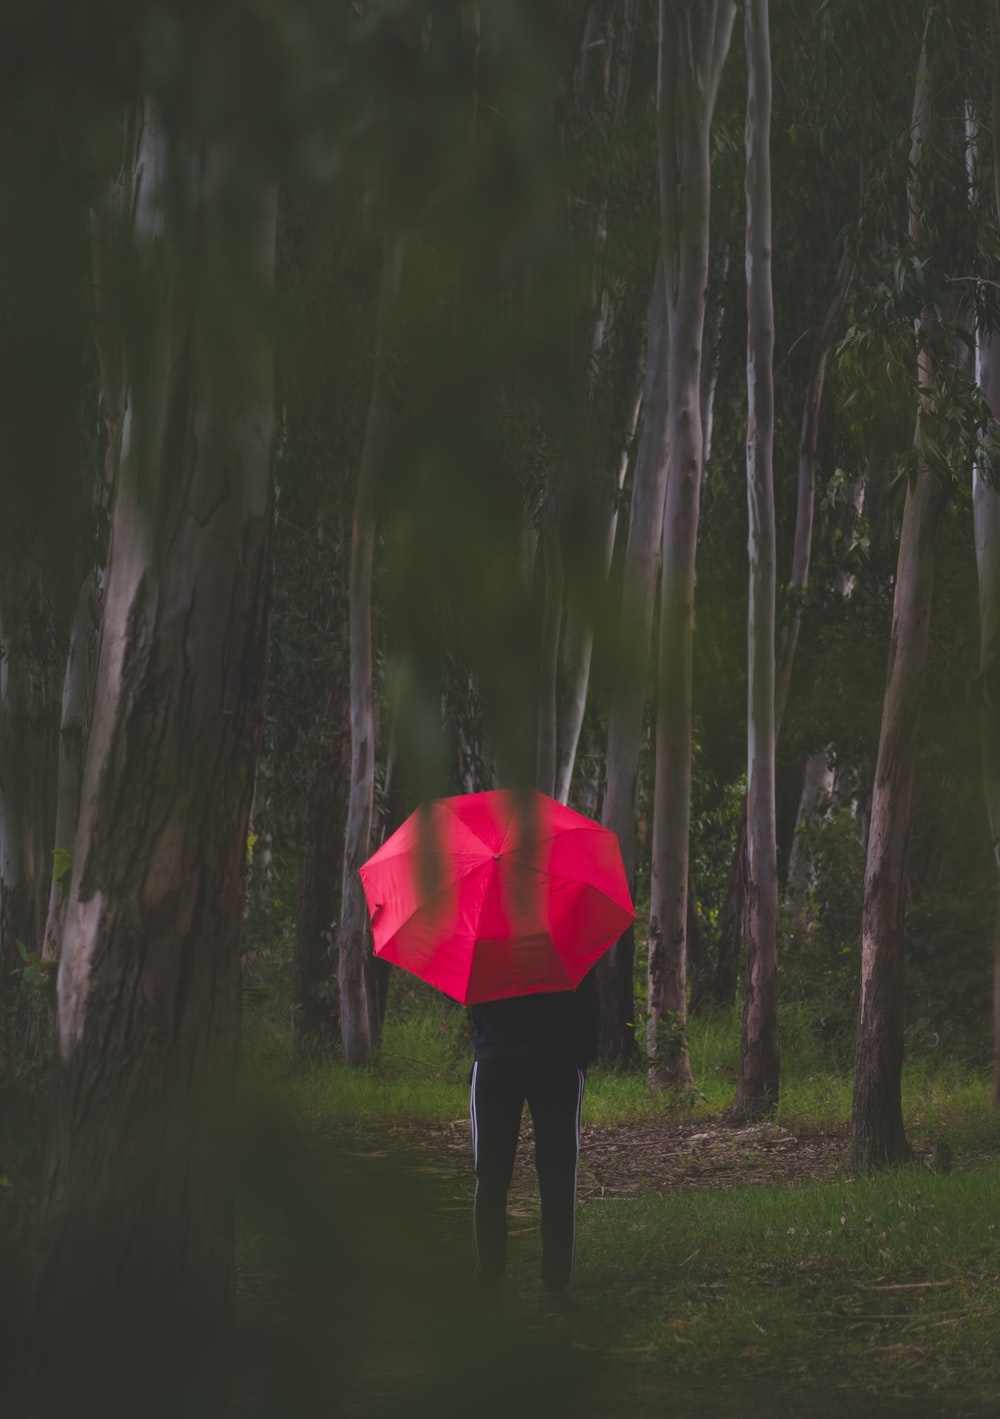 person in black jacket holding red umbrella standing on green grass field surrounded by green trees